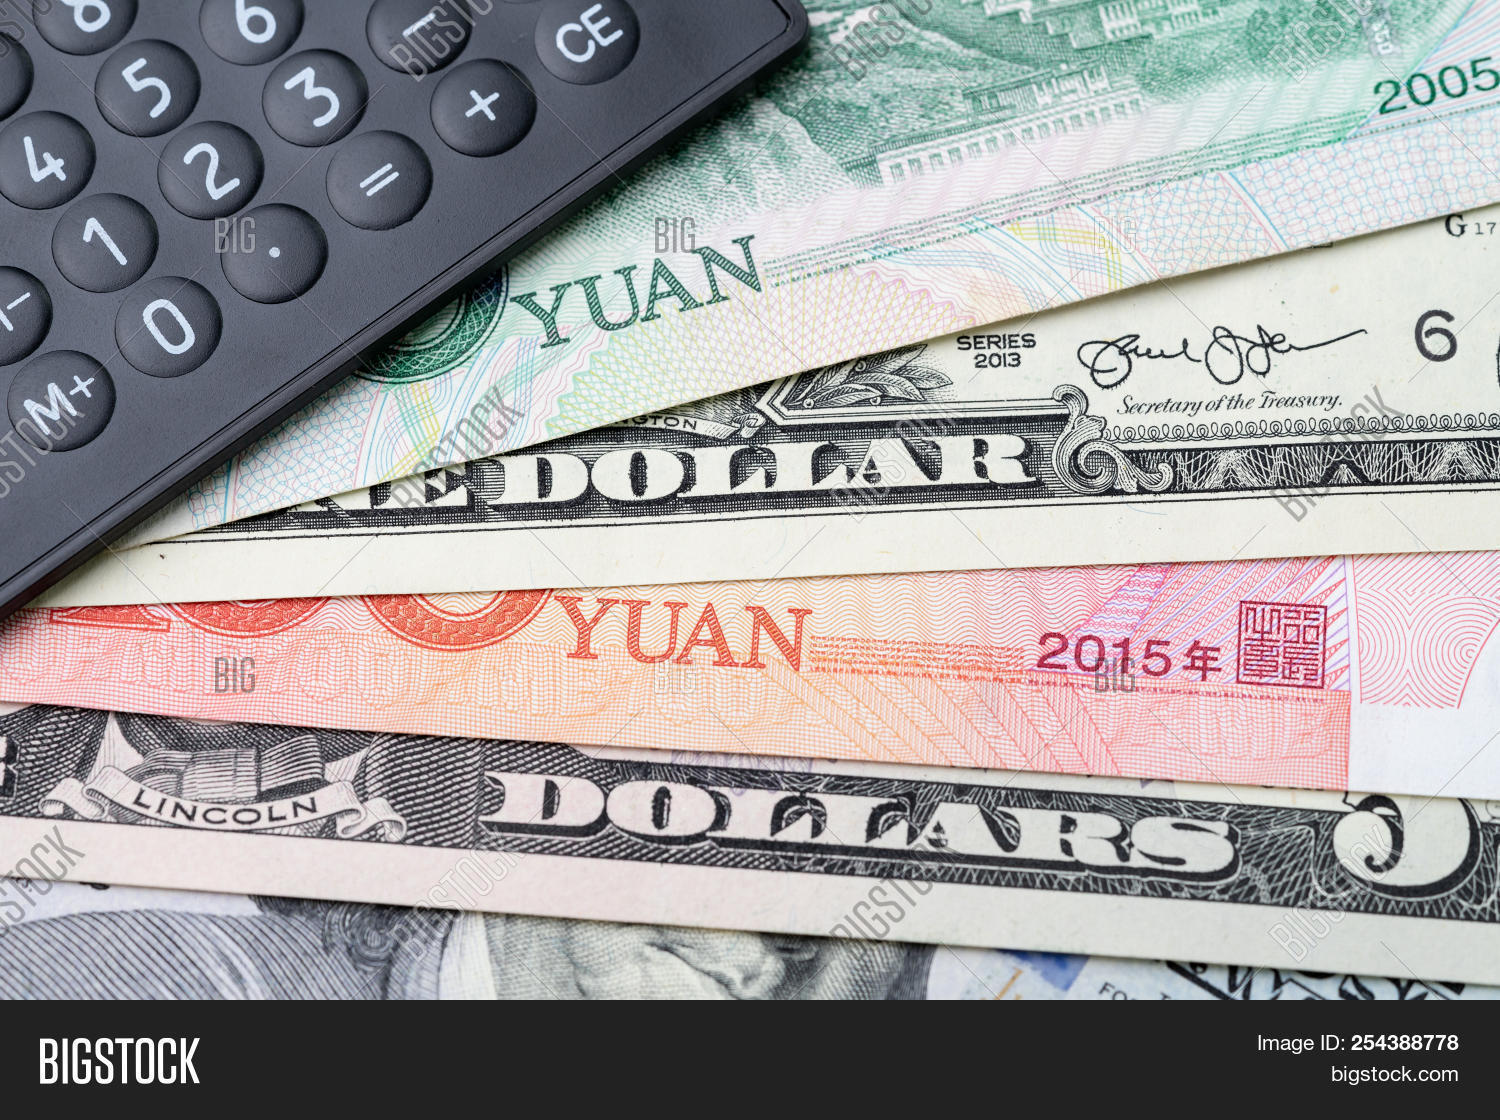 Us China Finance Image Photo Free Trial Stock